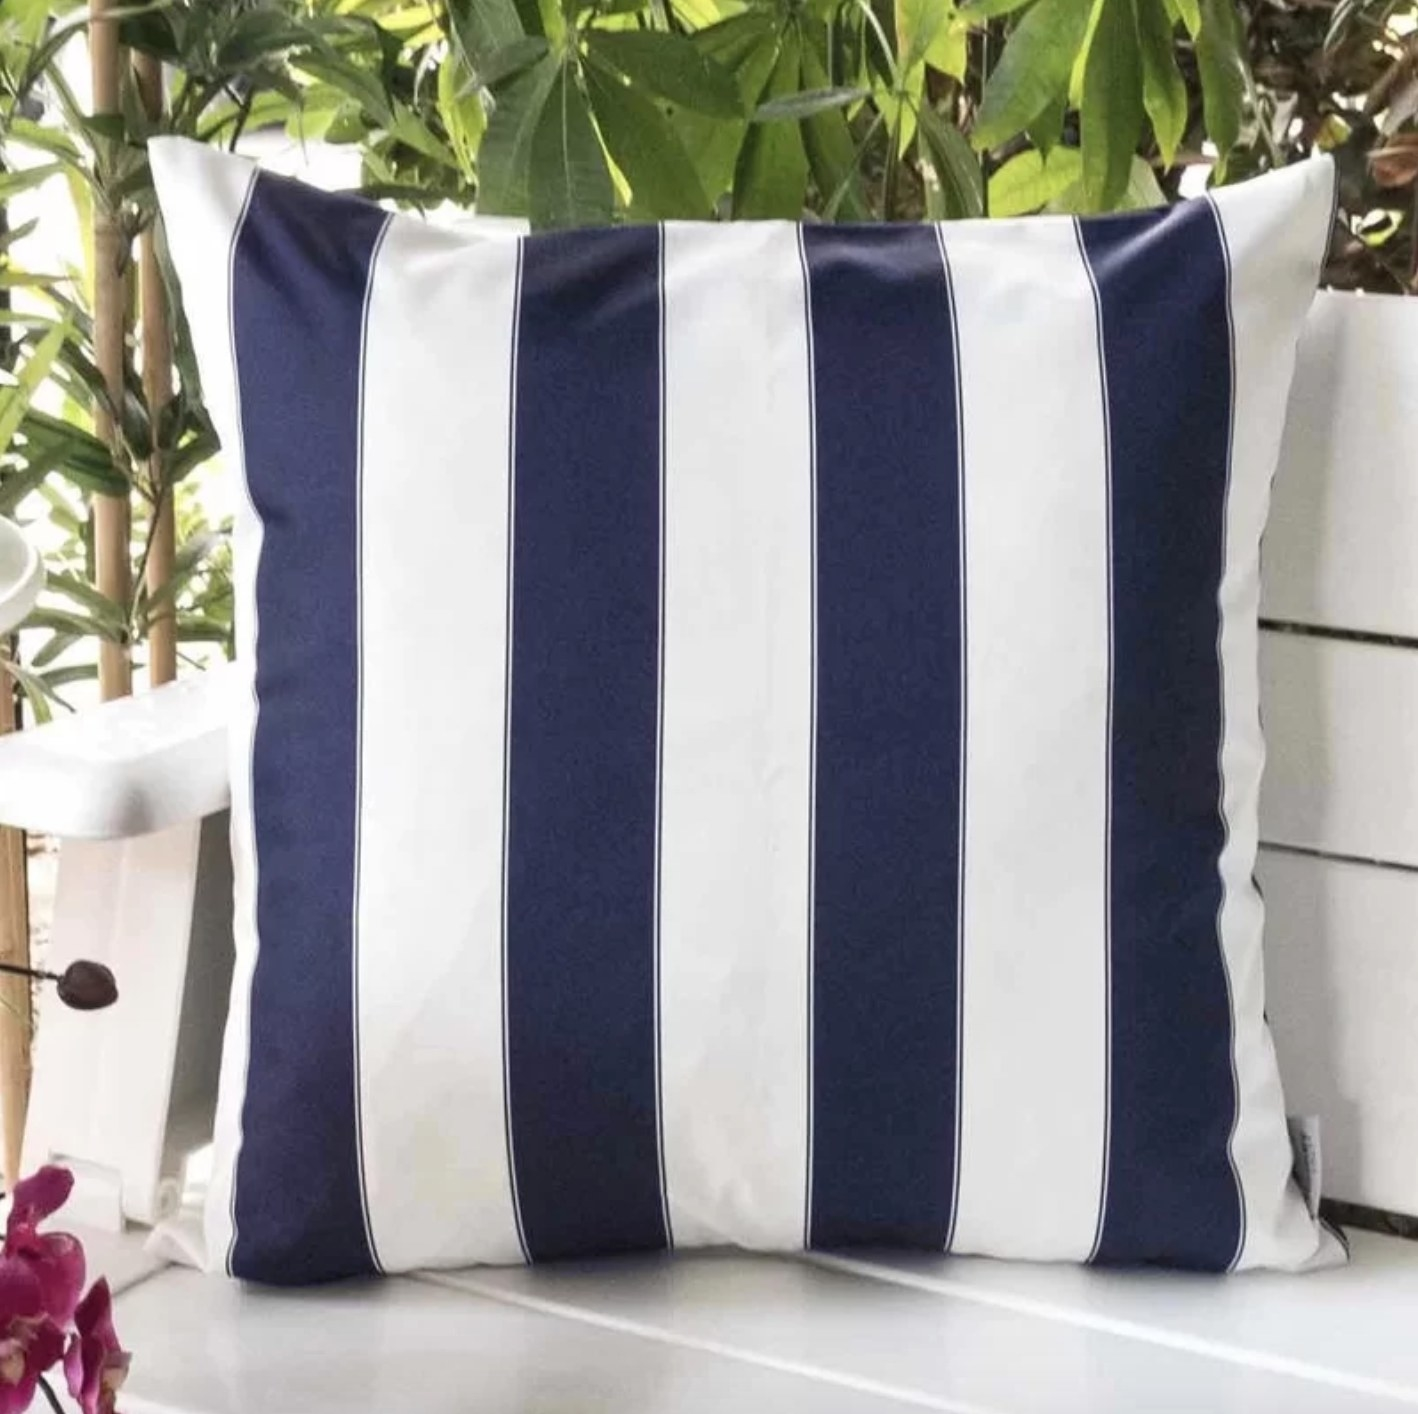 The set of two striped pillows in navy